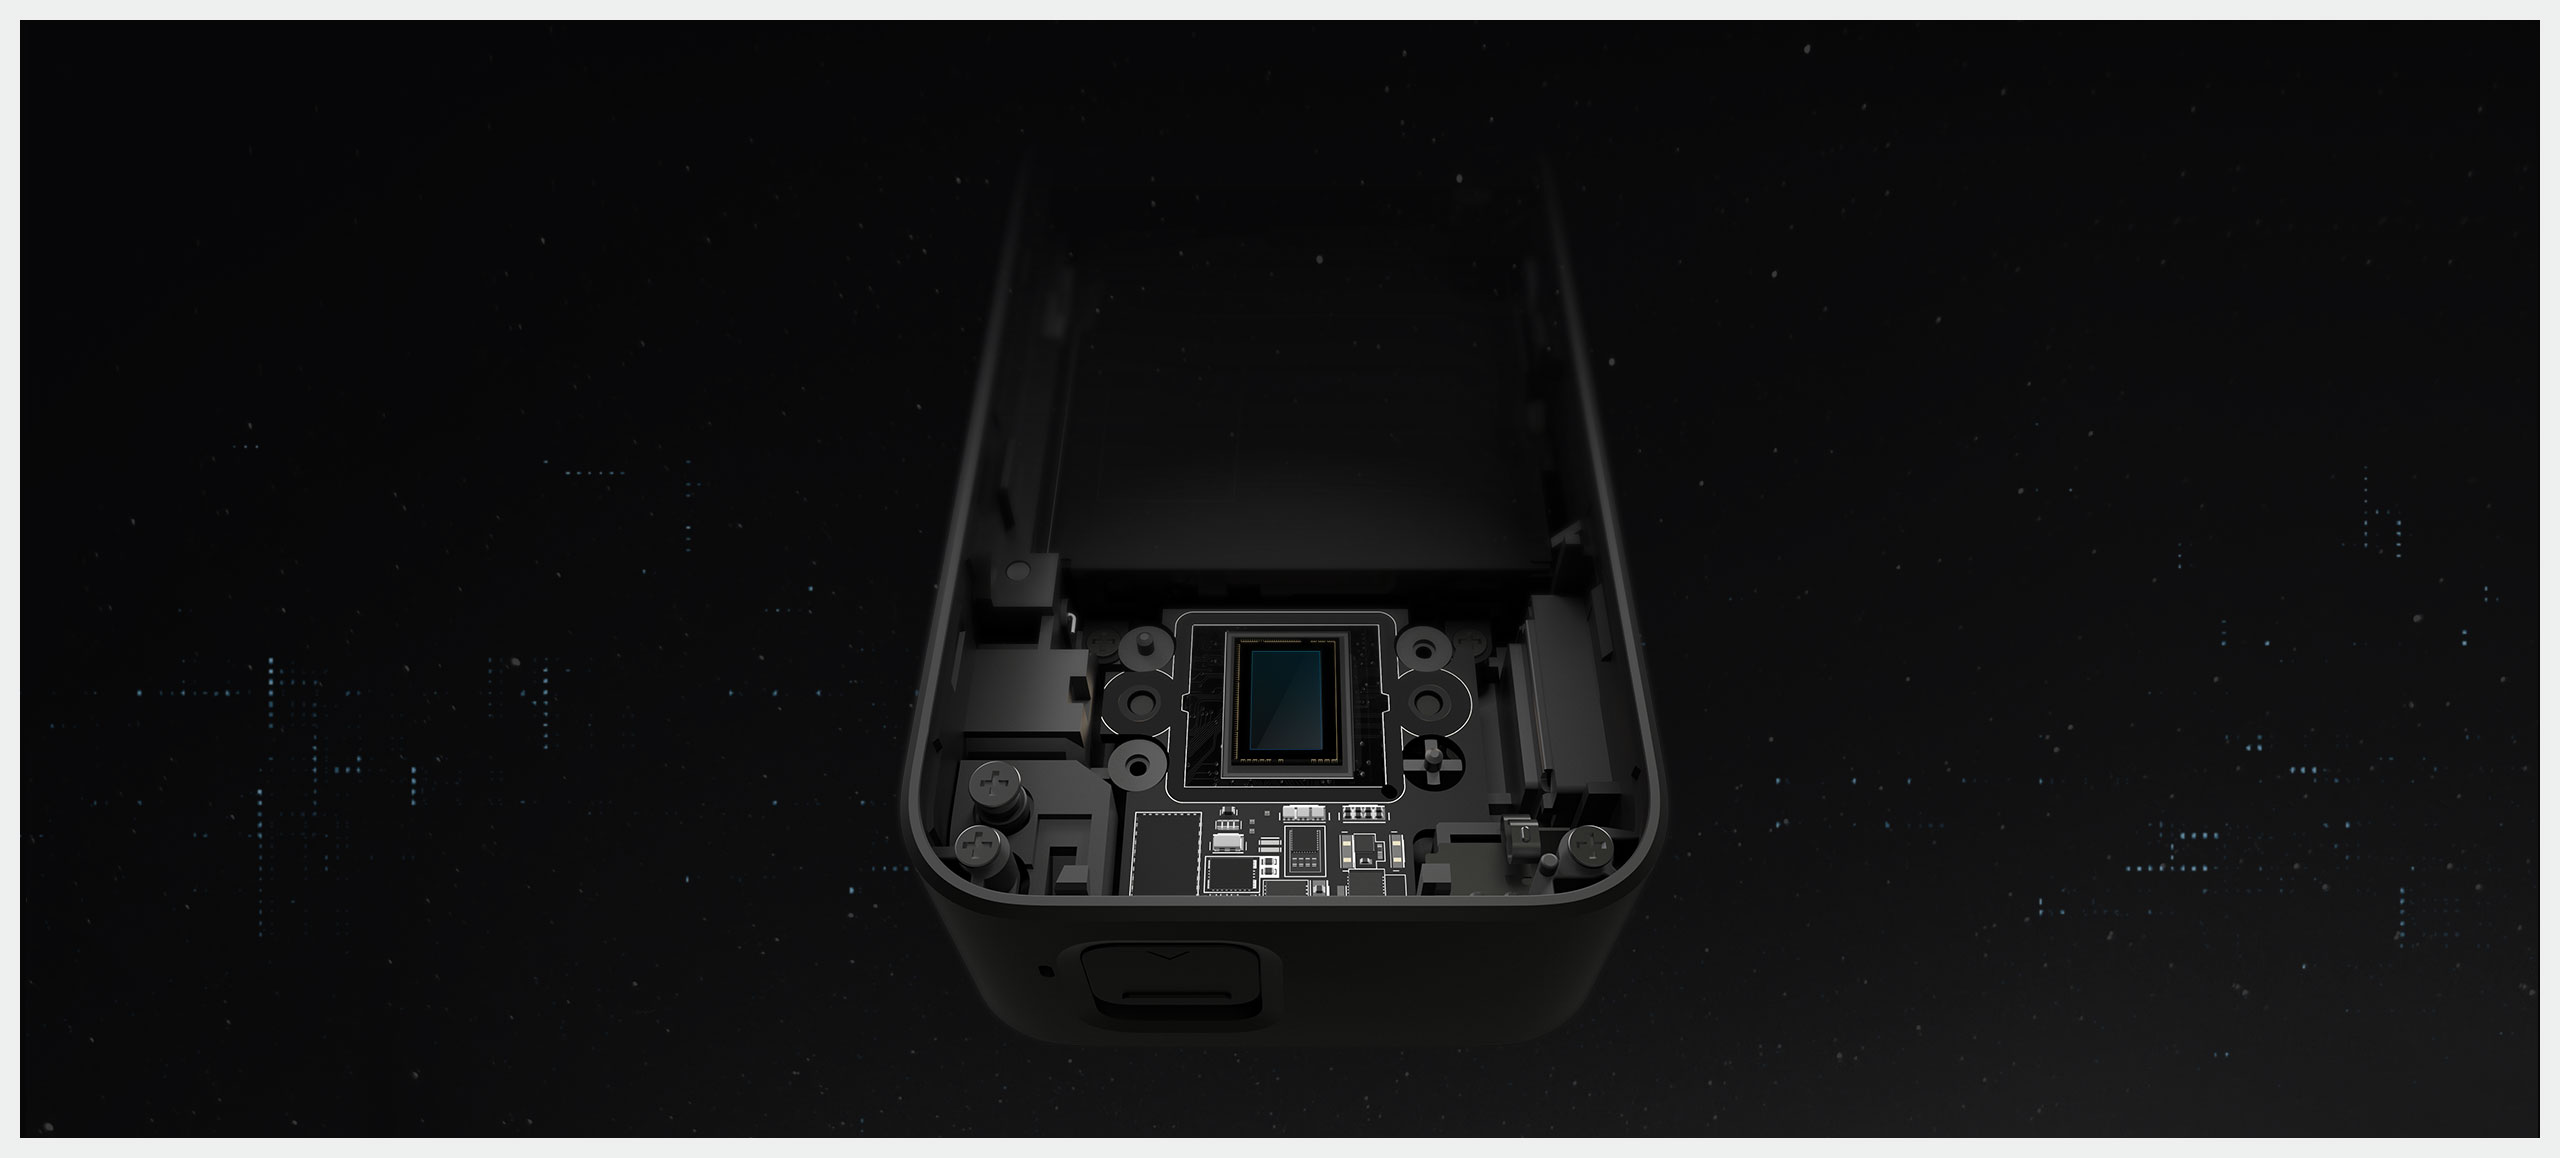 Xiaomi United States Waterproof Yi Discovery 4k Advanced Sensor Captures More Light